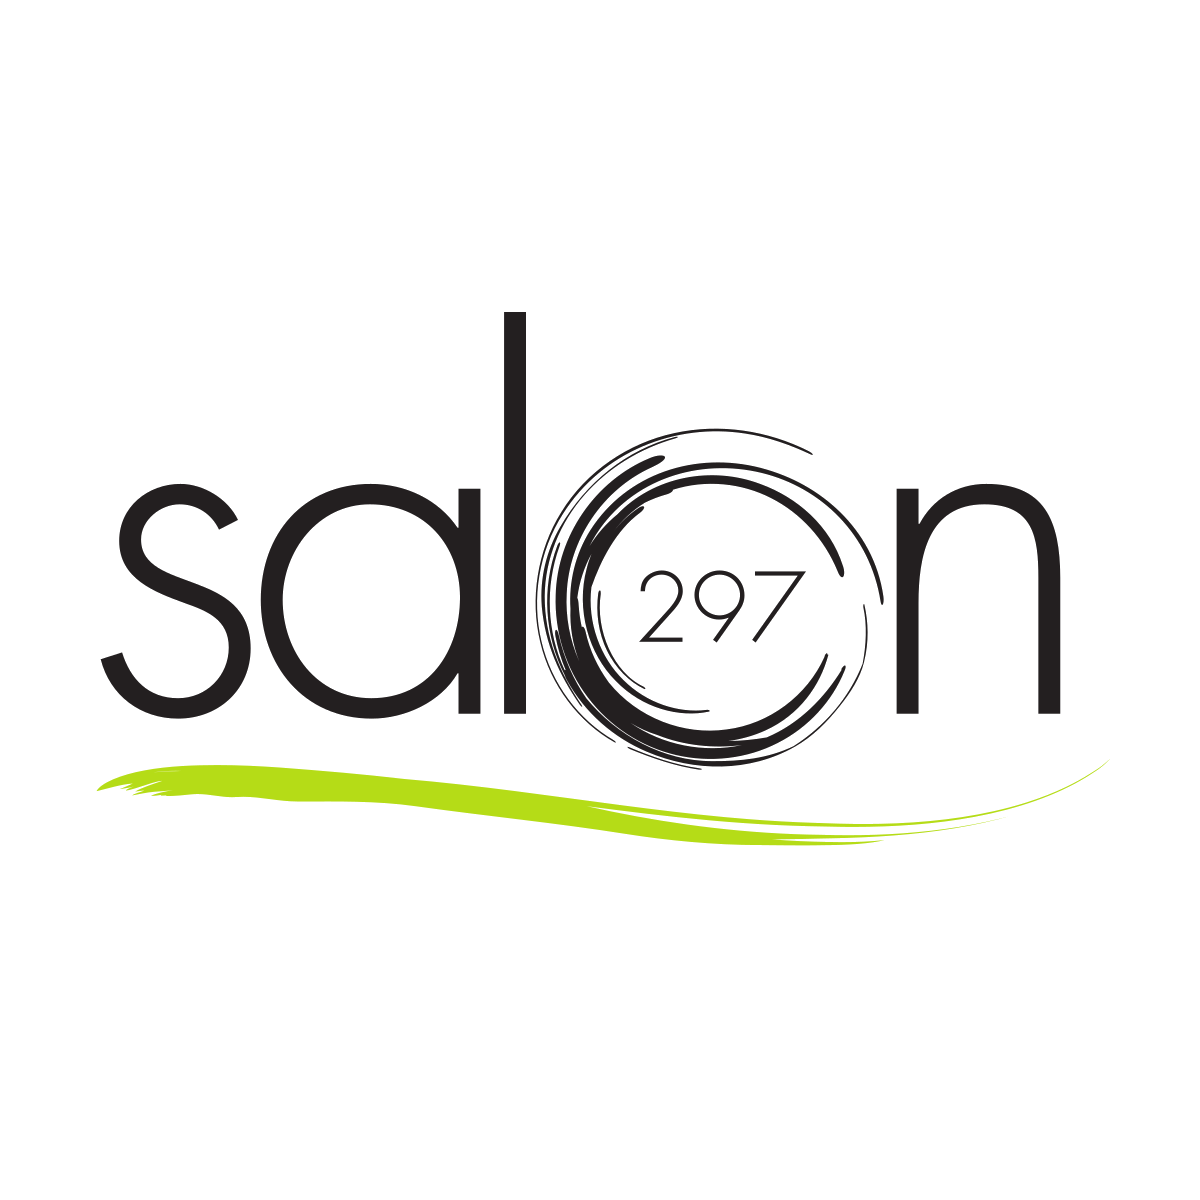 Permalink to:Salon 297